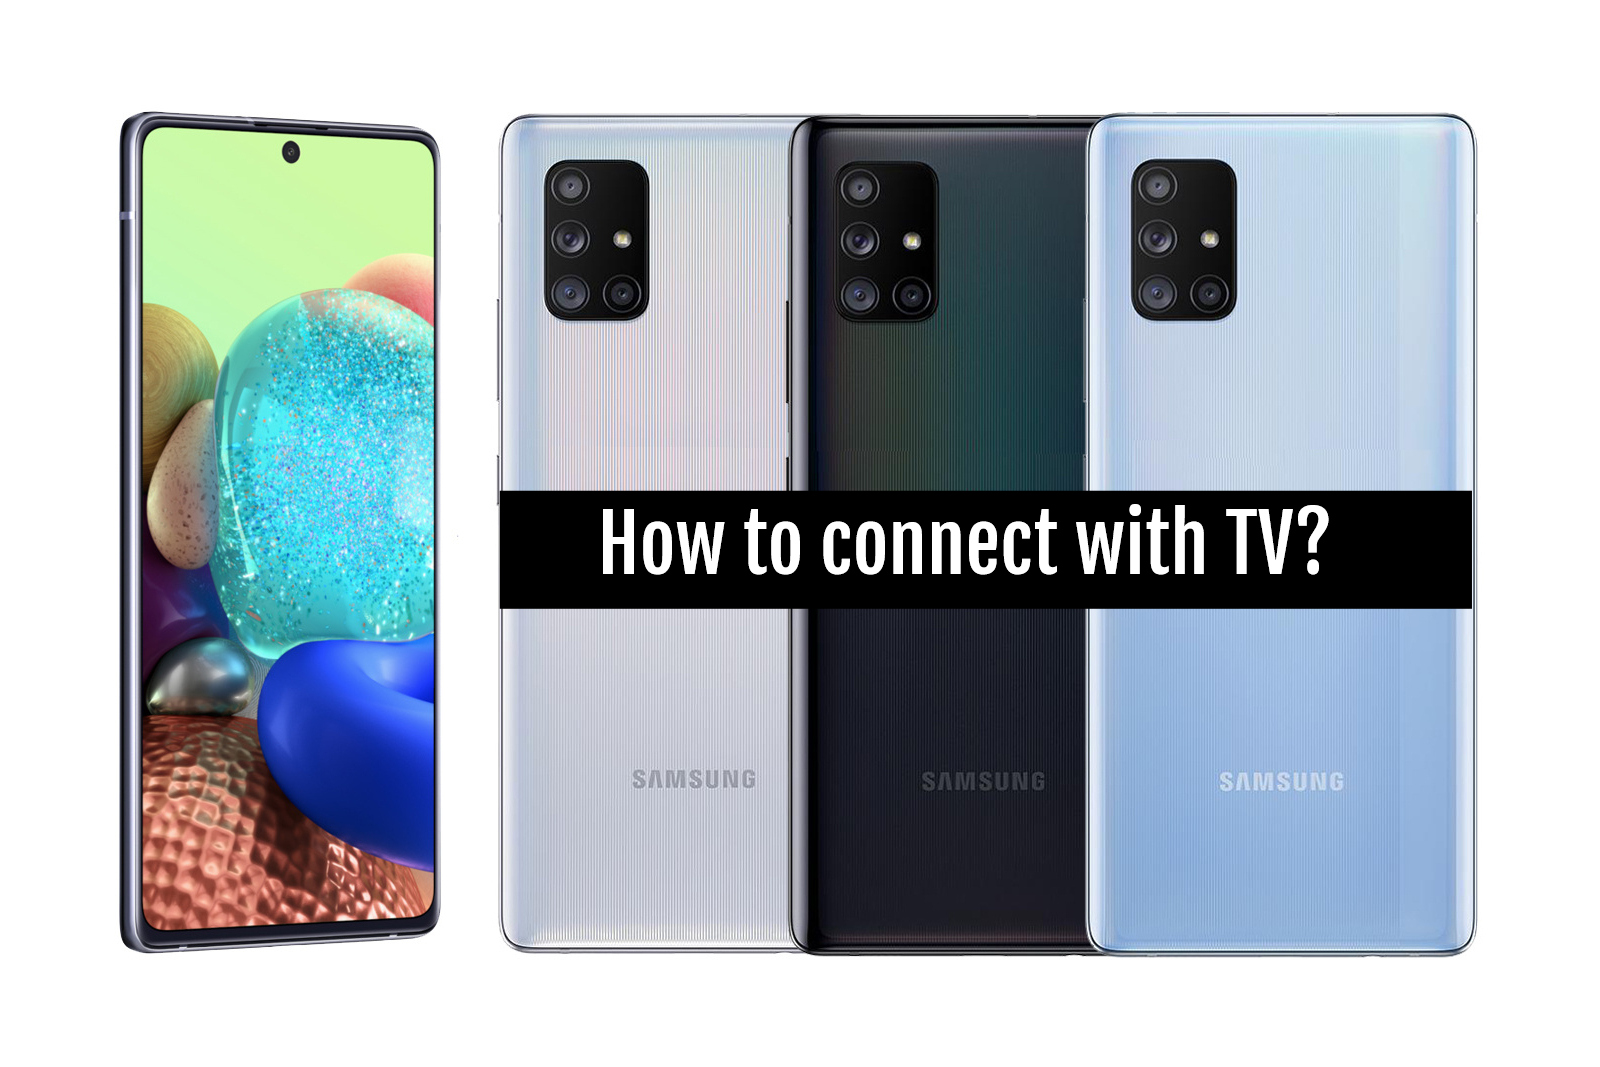 How to connect Samsung Galaxy A71 5G with TV?